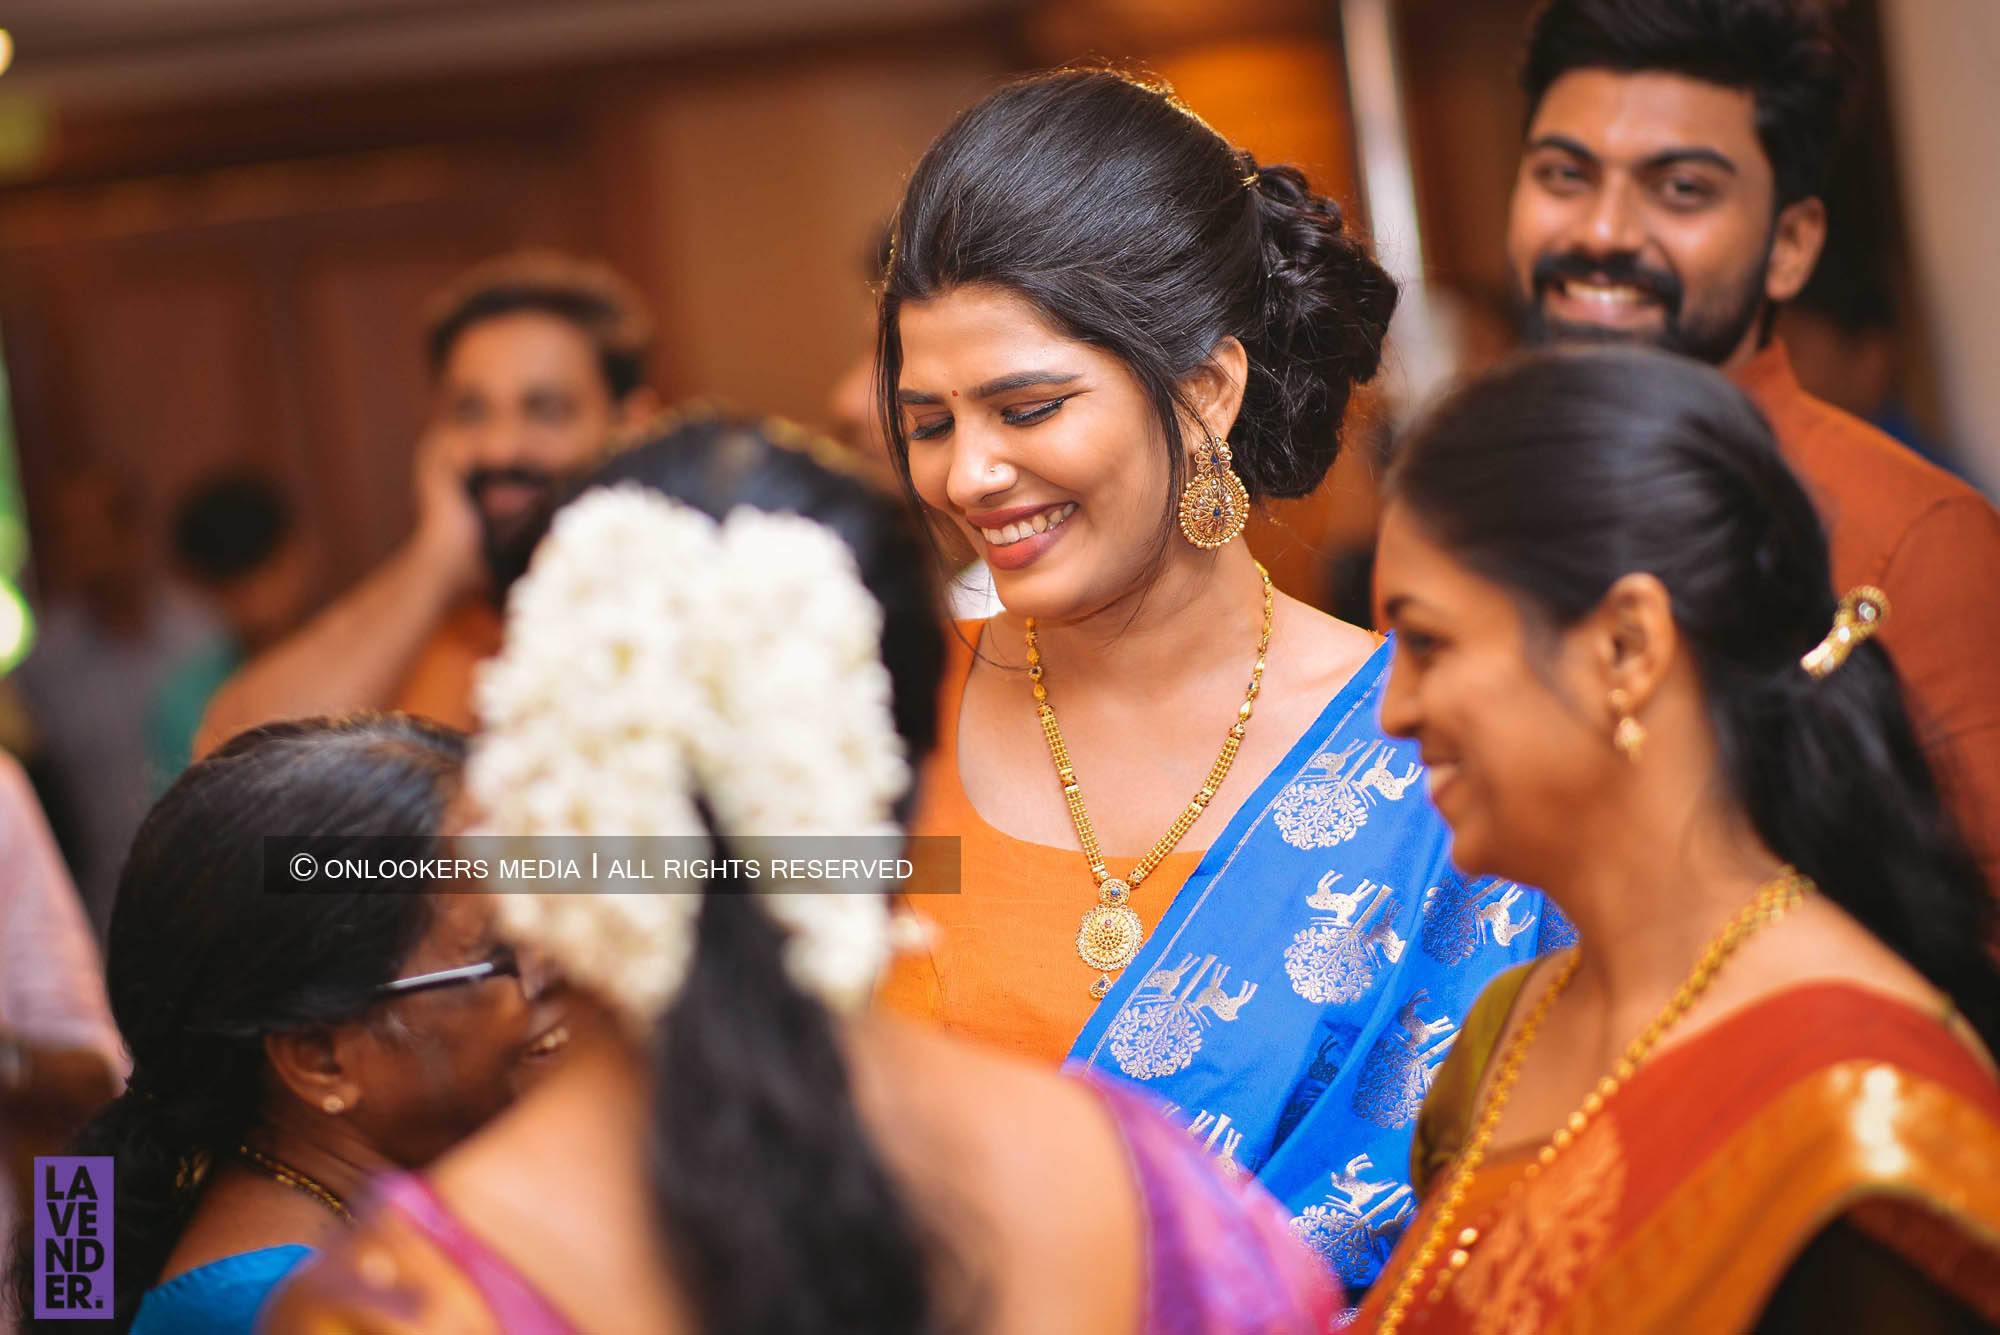 http://onlookersmedia.in/wp-content/uploads/2018/05/sreejith-vijay-wedding-stills-images-77.jpg